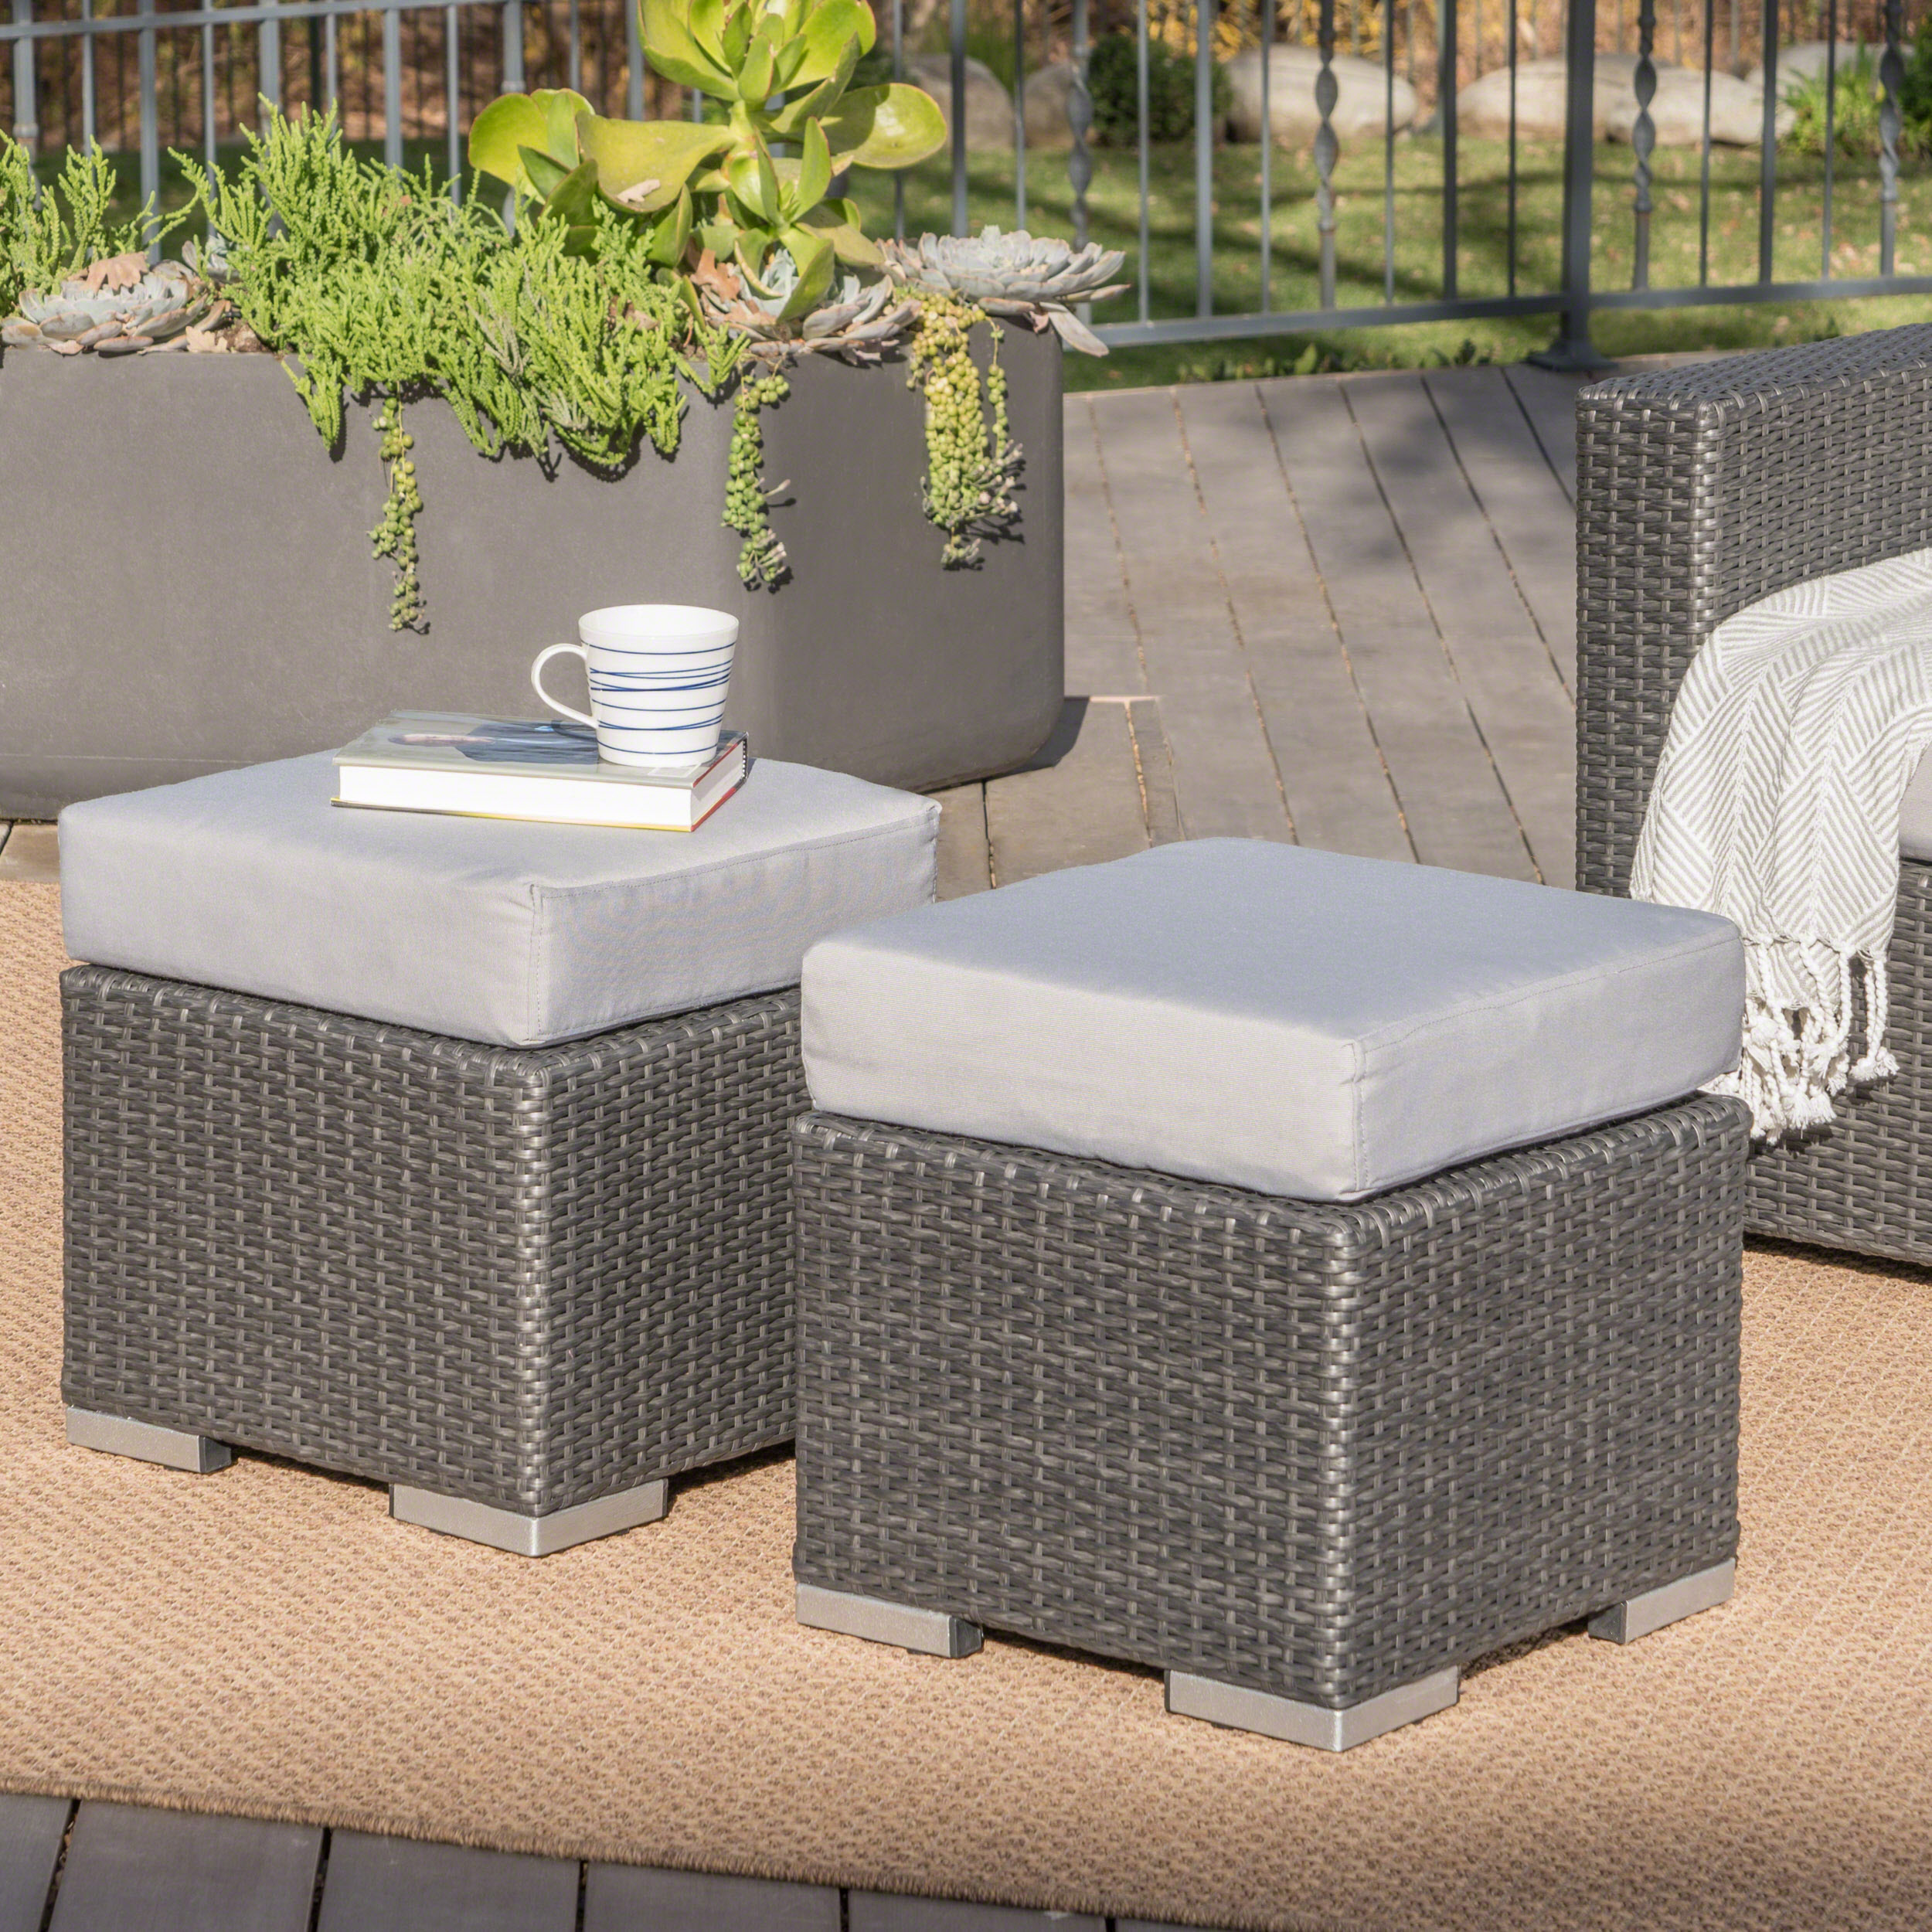 Avianna Outdoor 16 Inch Wicker Ottoman Seat with Cushion, Set of 2, Grey, Silver